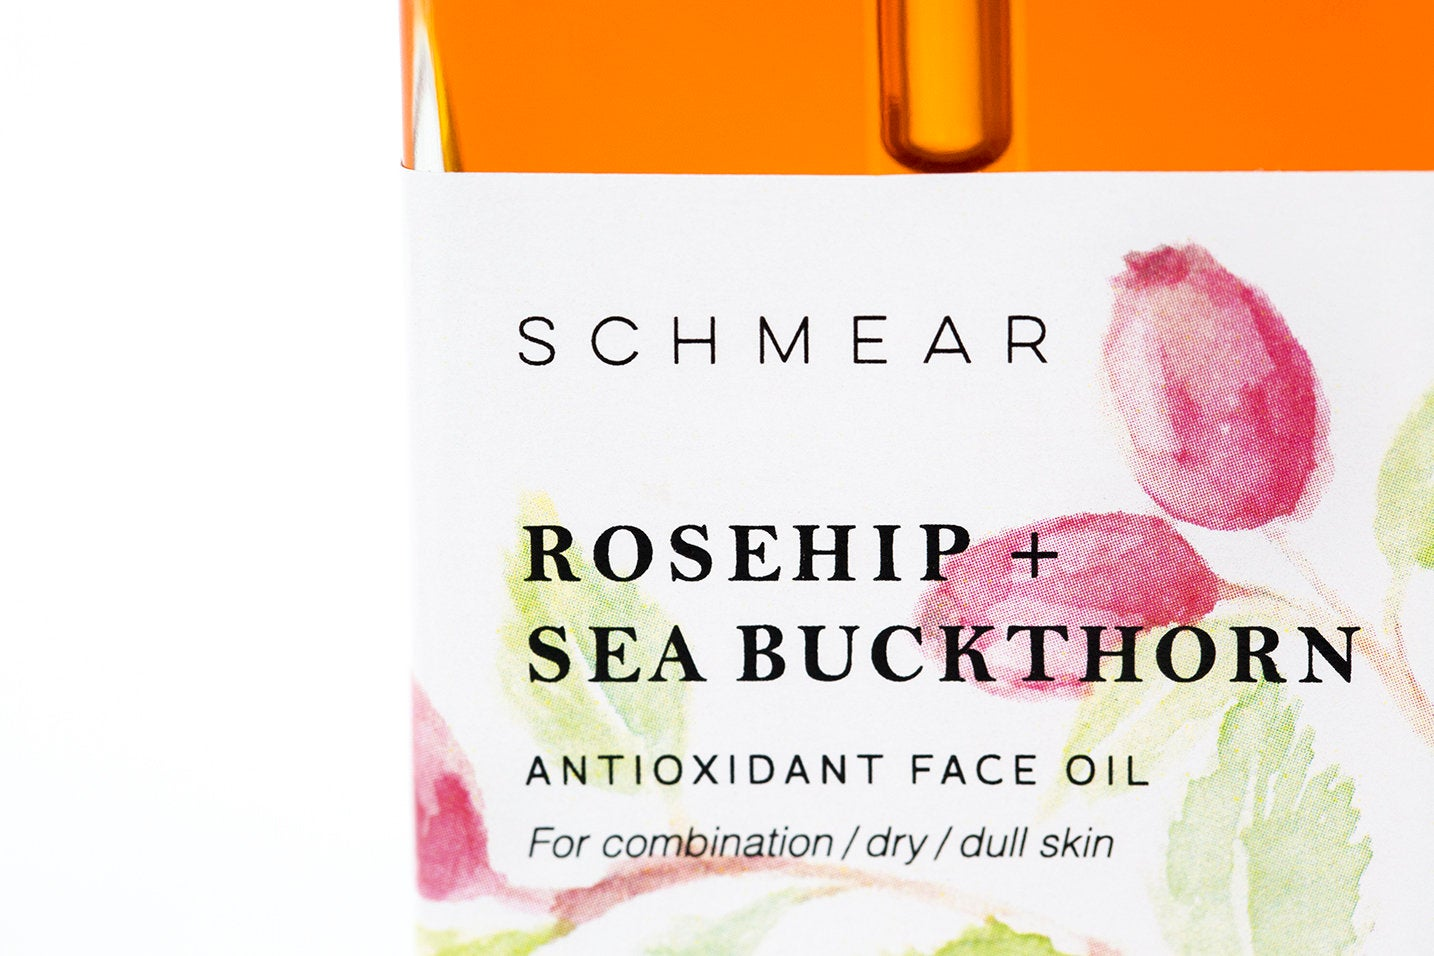 Organic Rosehip and Sea Buckthorn Face Oil to Brighten Skin